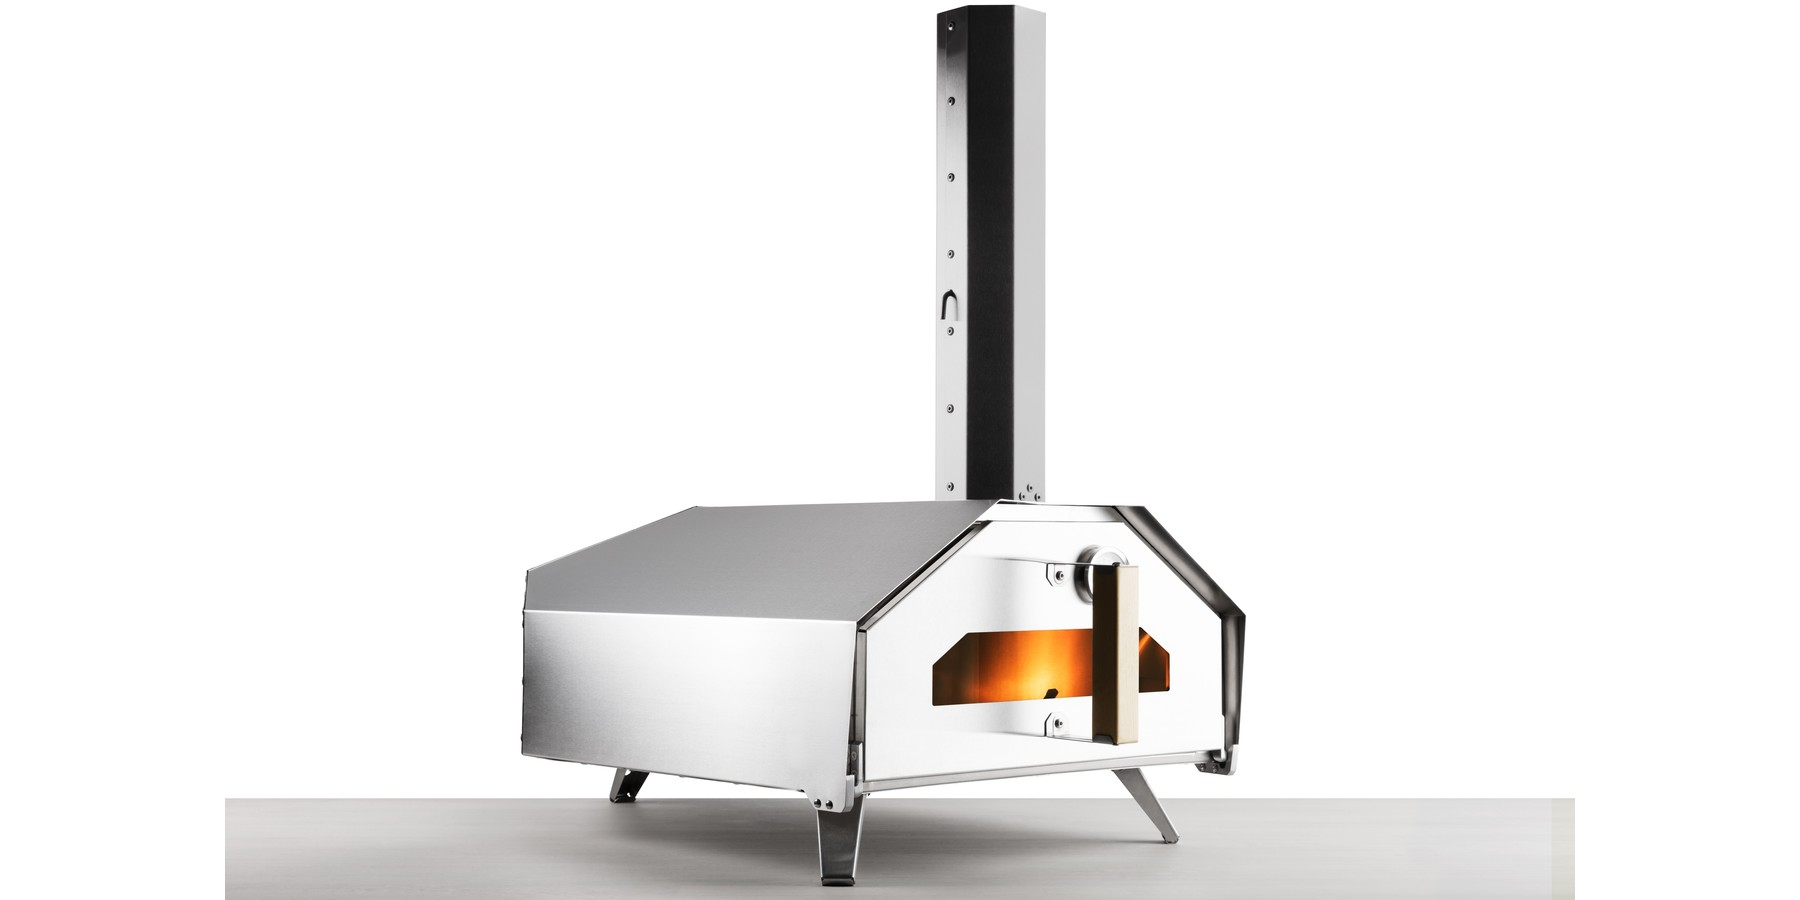 Ooni Pro outdoor pizza oven PRE-ORDER